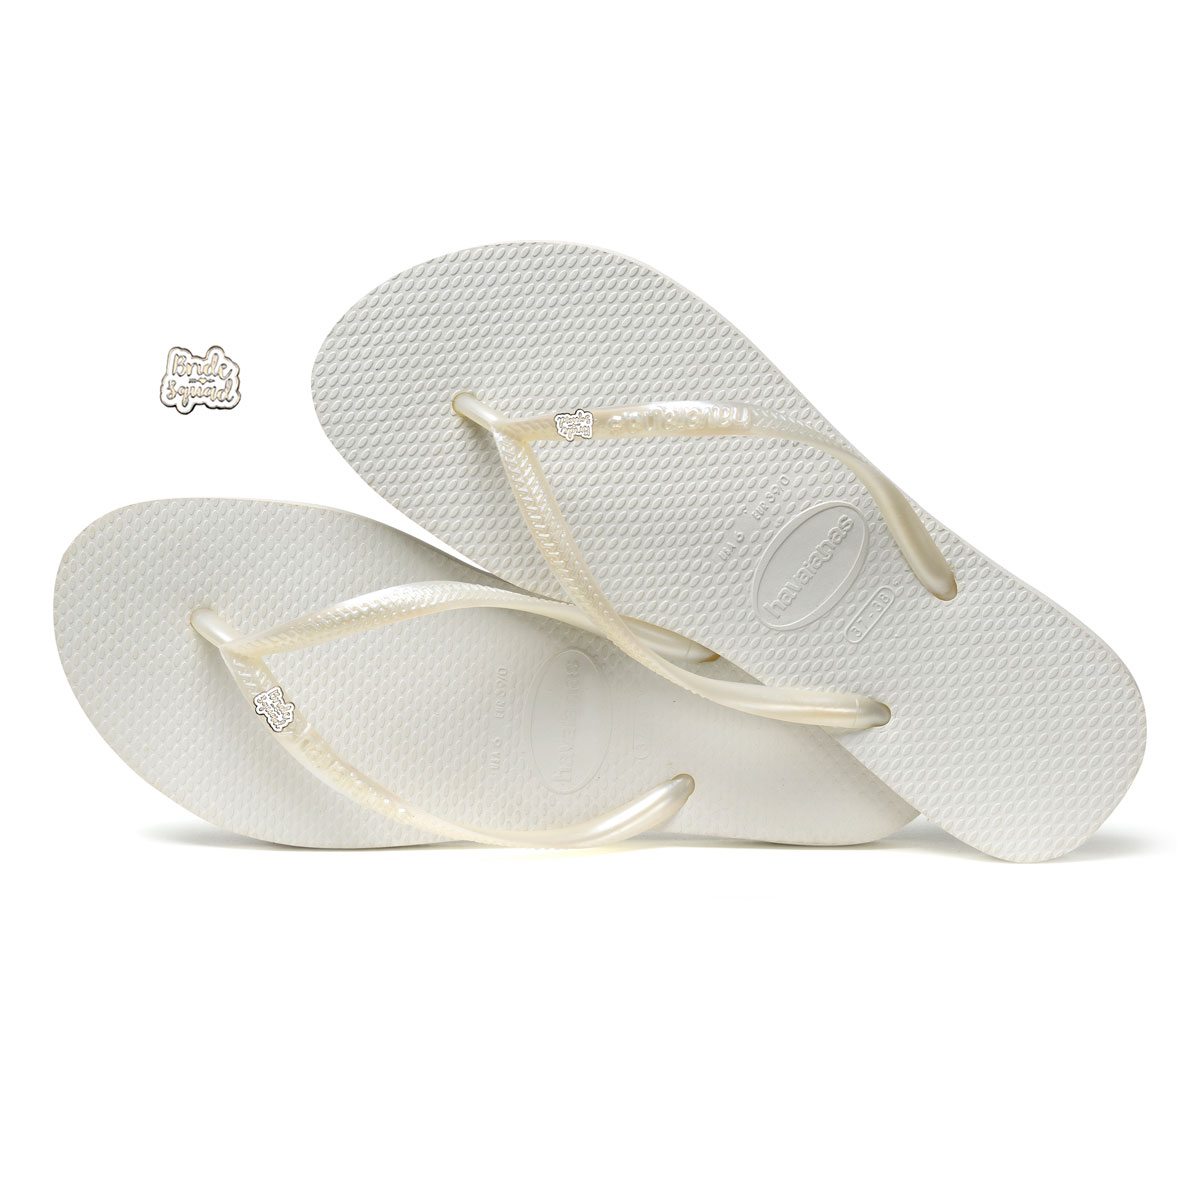 Havaianas White Slim Flip Flops with Silver & White Bride Squad Charm